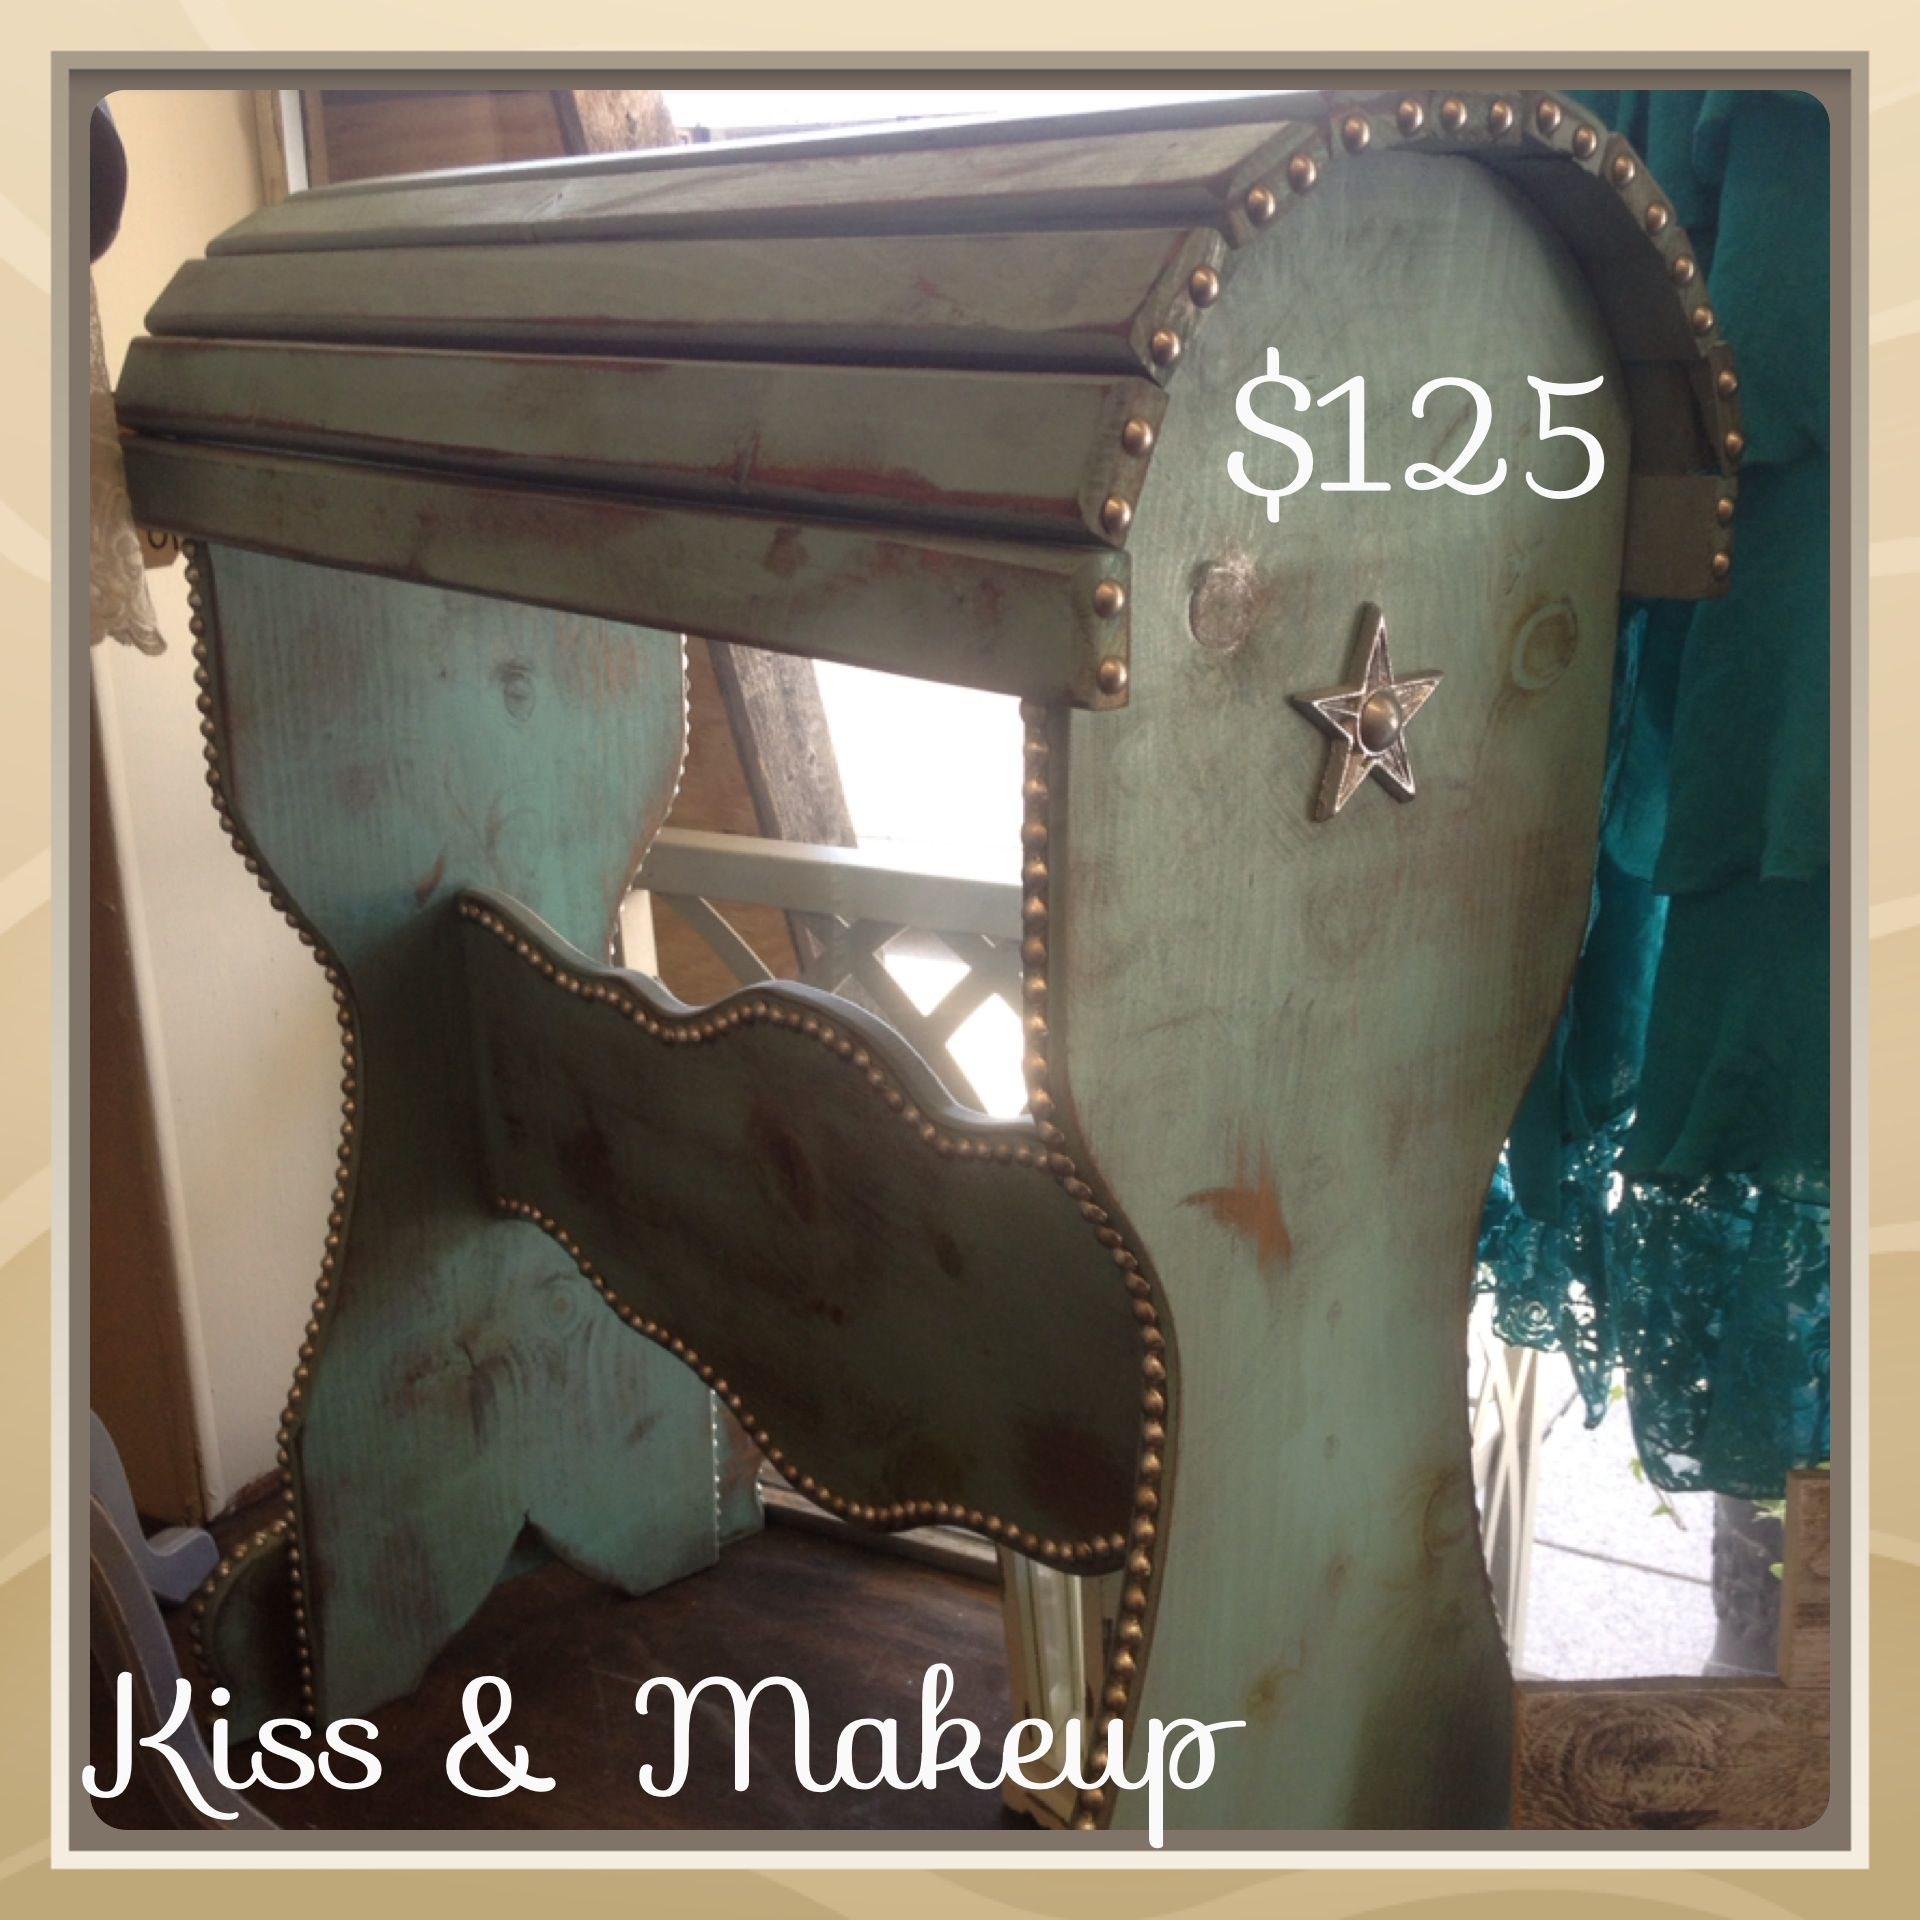 Beautiful saddle rack. $125.  Call Kiss & Makeup Boutique and Salon in Mckinney to purchase. 972-542-6785 Or follow us on Facebook!!  Or come see us.... 214 N. Kentucky McKinney, TX 75069